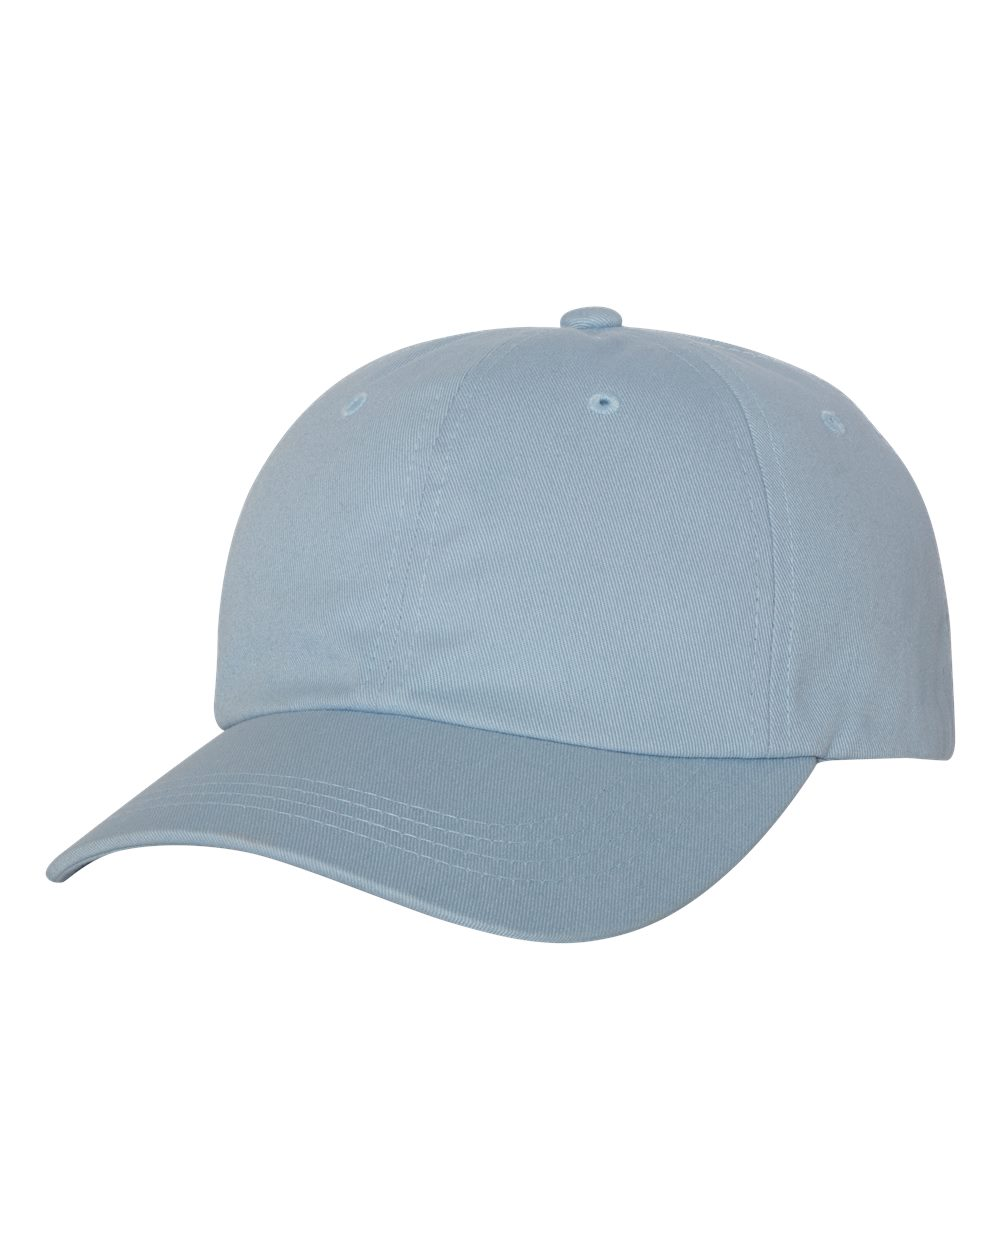 Yupoong 6245CM - Unstructured Classic Dad's Cap